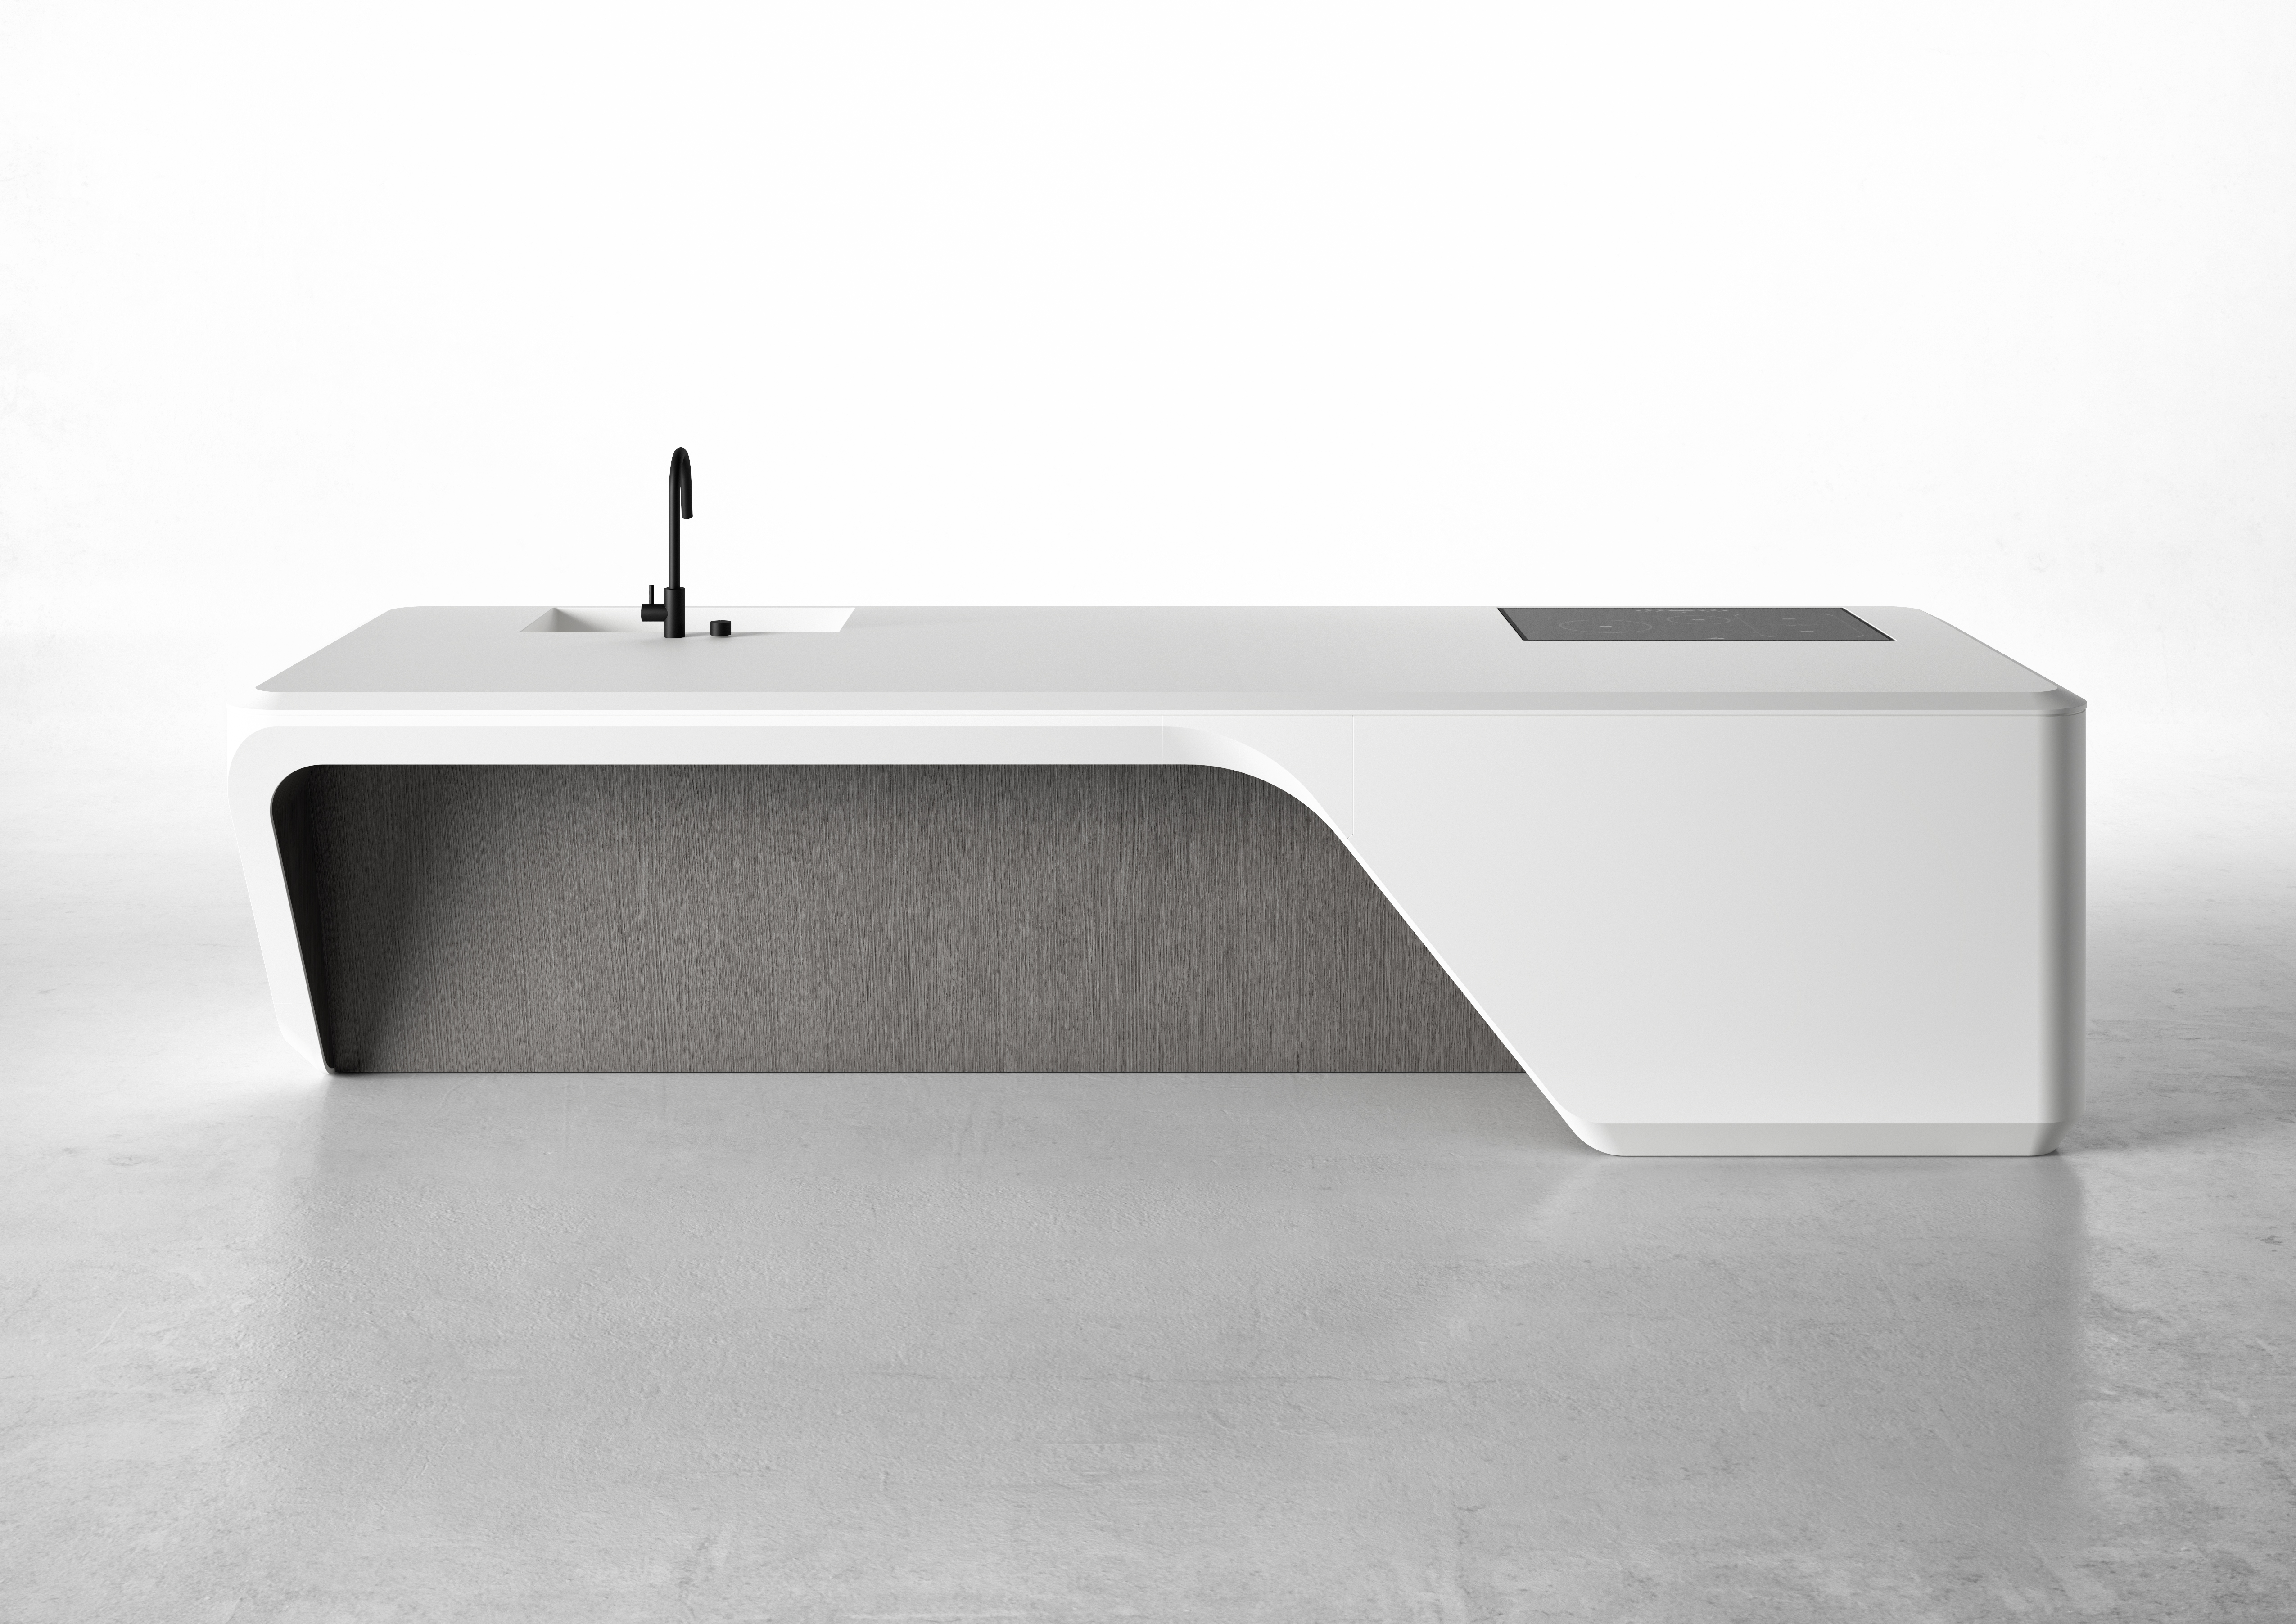 Boffi S New Contemporary Kitchen By Late Architect Zaha Hadid